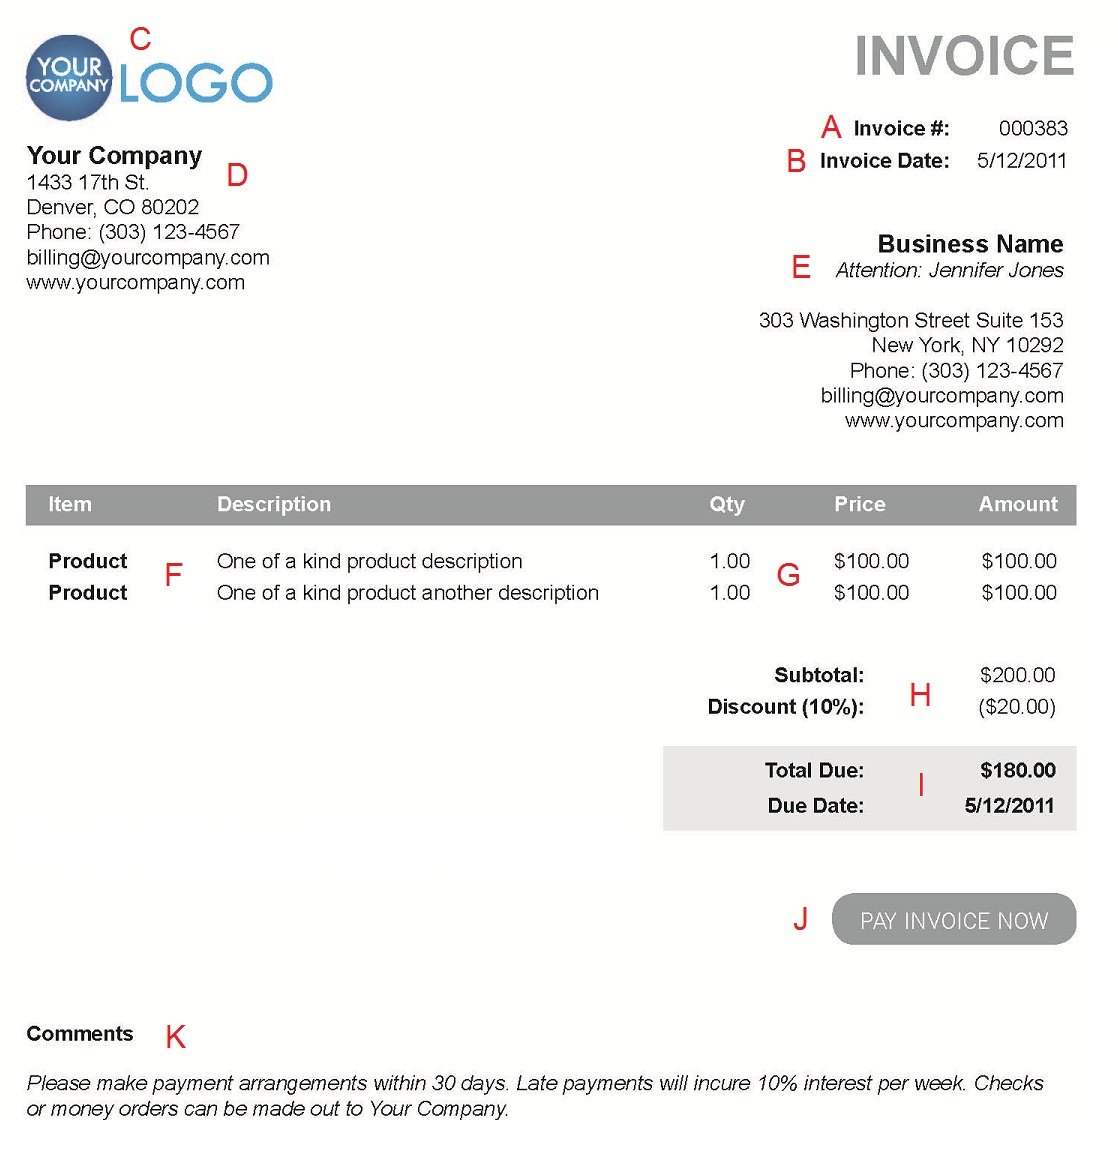 Hucareus  Marvelous The  Different Sections Of An Electronic Payment Invoice With Goodlooking A  With Amusing Lawn Care Invoice Template Also Mazda Cx  Invoice Price In Addition Invoicing Programs And Free Service Invoice Template As Well As Invoice Wave Additionally Invoice Template Word Download Free From Paysimplecom With Hucareus  Goodlooking The  Different Sections Of An Electronic Payment Invoice With Amusing A  And Marvelous Lawn Care Invoice Template Also Mazda Cx  Invoice Price In Addition Invoicing Programs From Paysimplecom